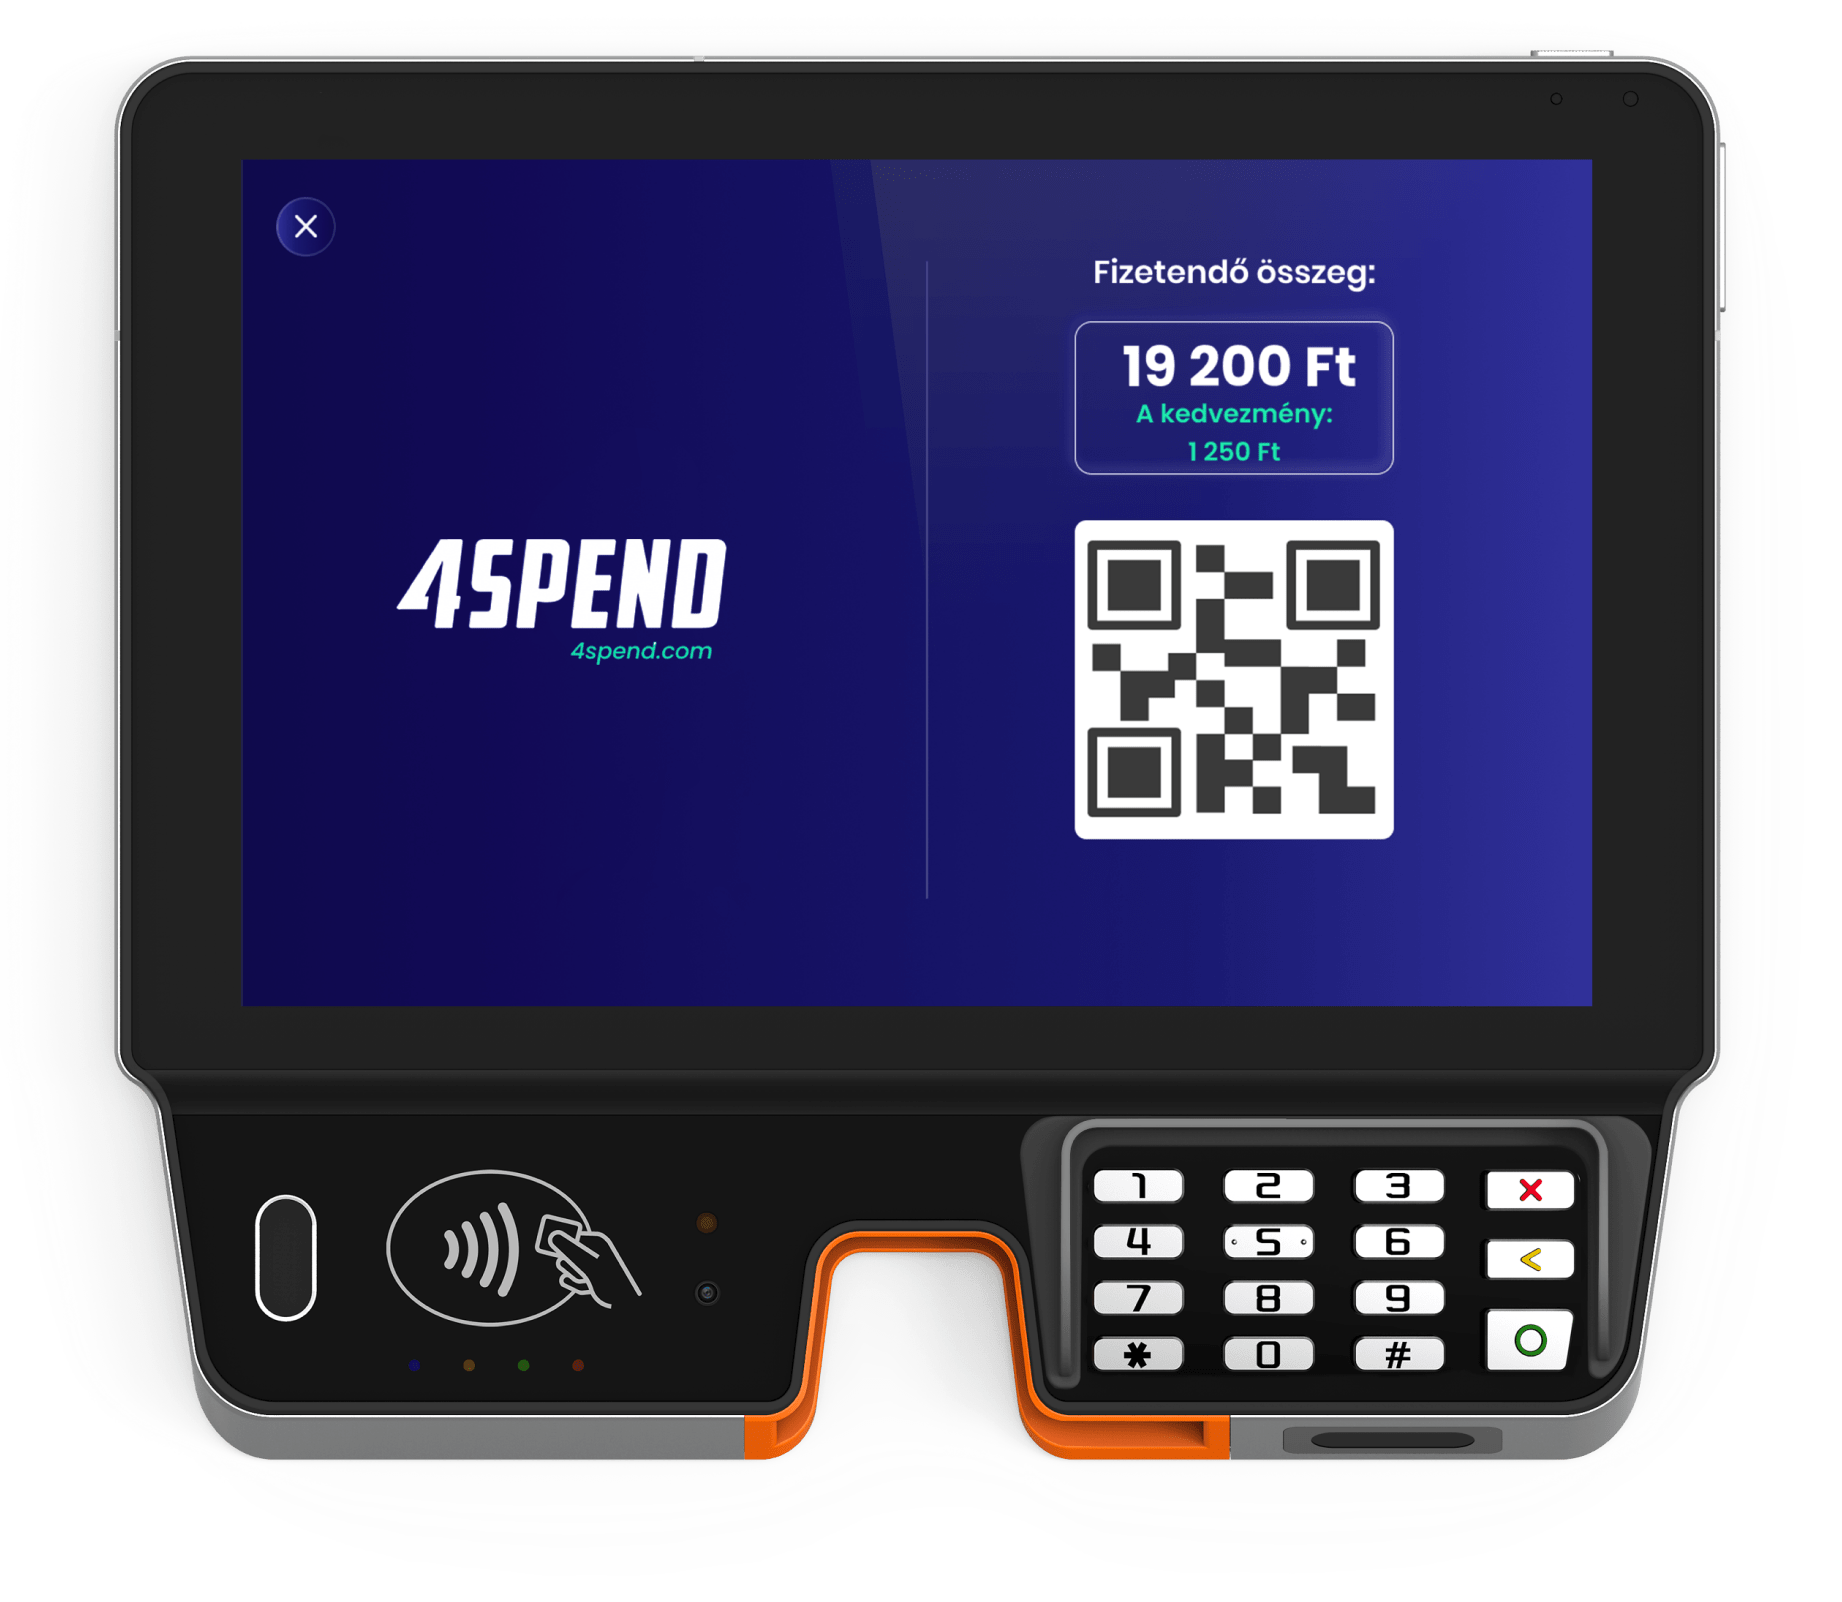 service_page_express_payment_payment_steps_2